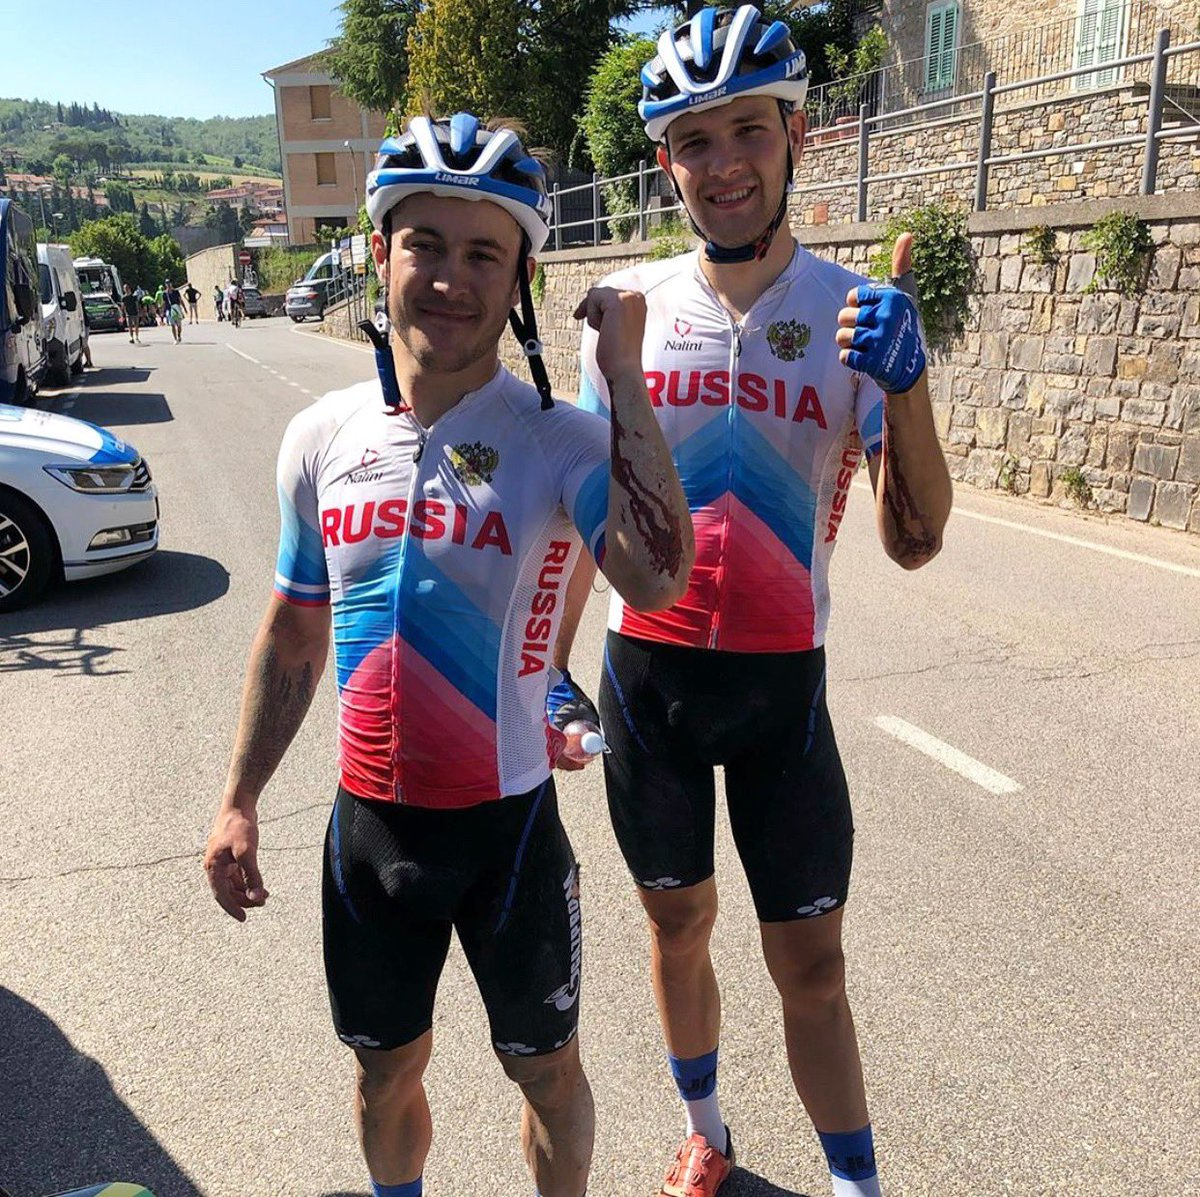 #Cyclinghurts however the fight for the pink continues and the most decisive stages of #GirodItaliaU23 are ahead! 🏔   #RockTheRoyalBlueJersey #GazpromRusVelo #TeamRussia #cycling #ciclismo #u23cycling